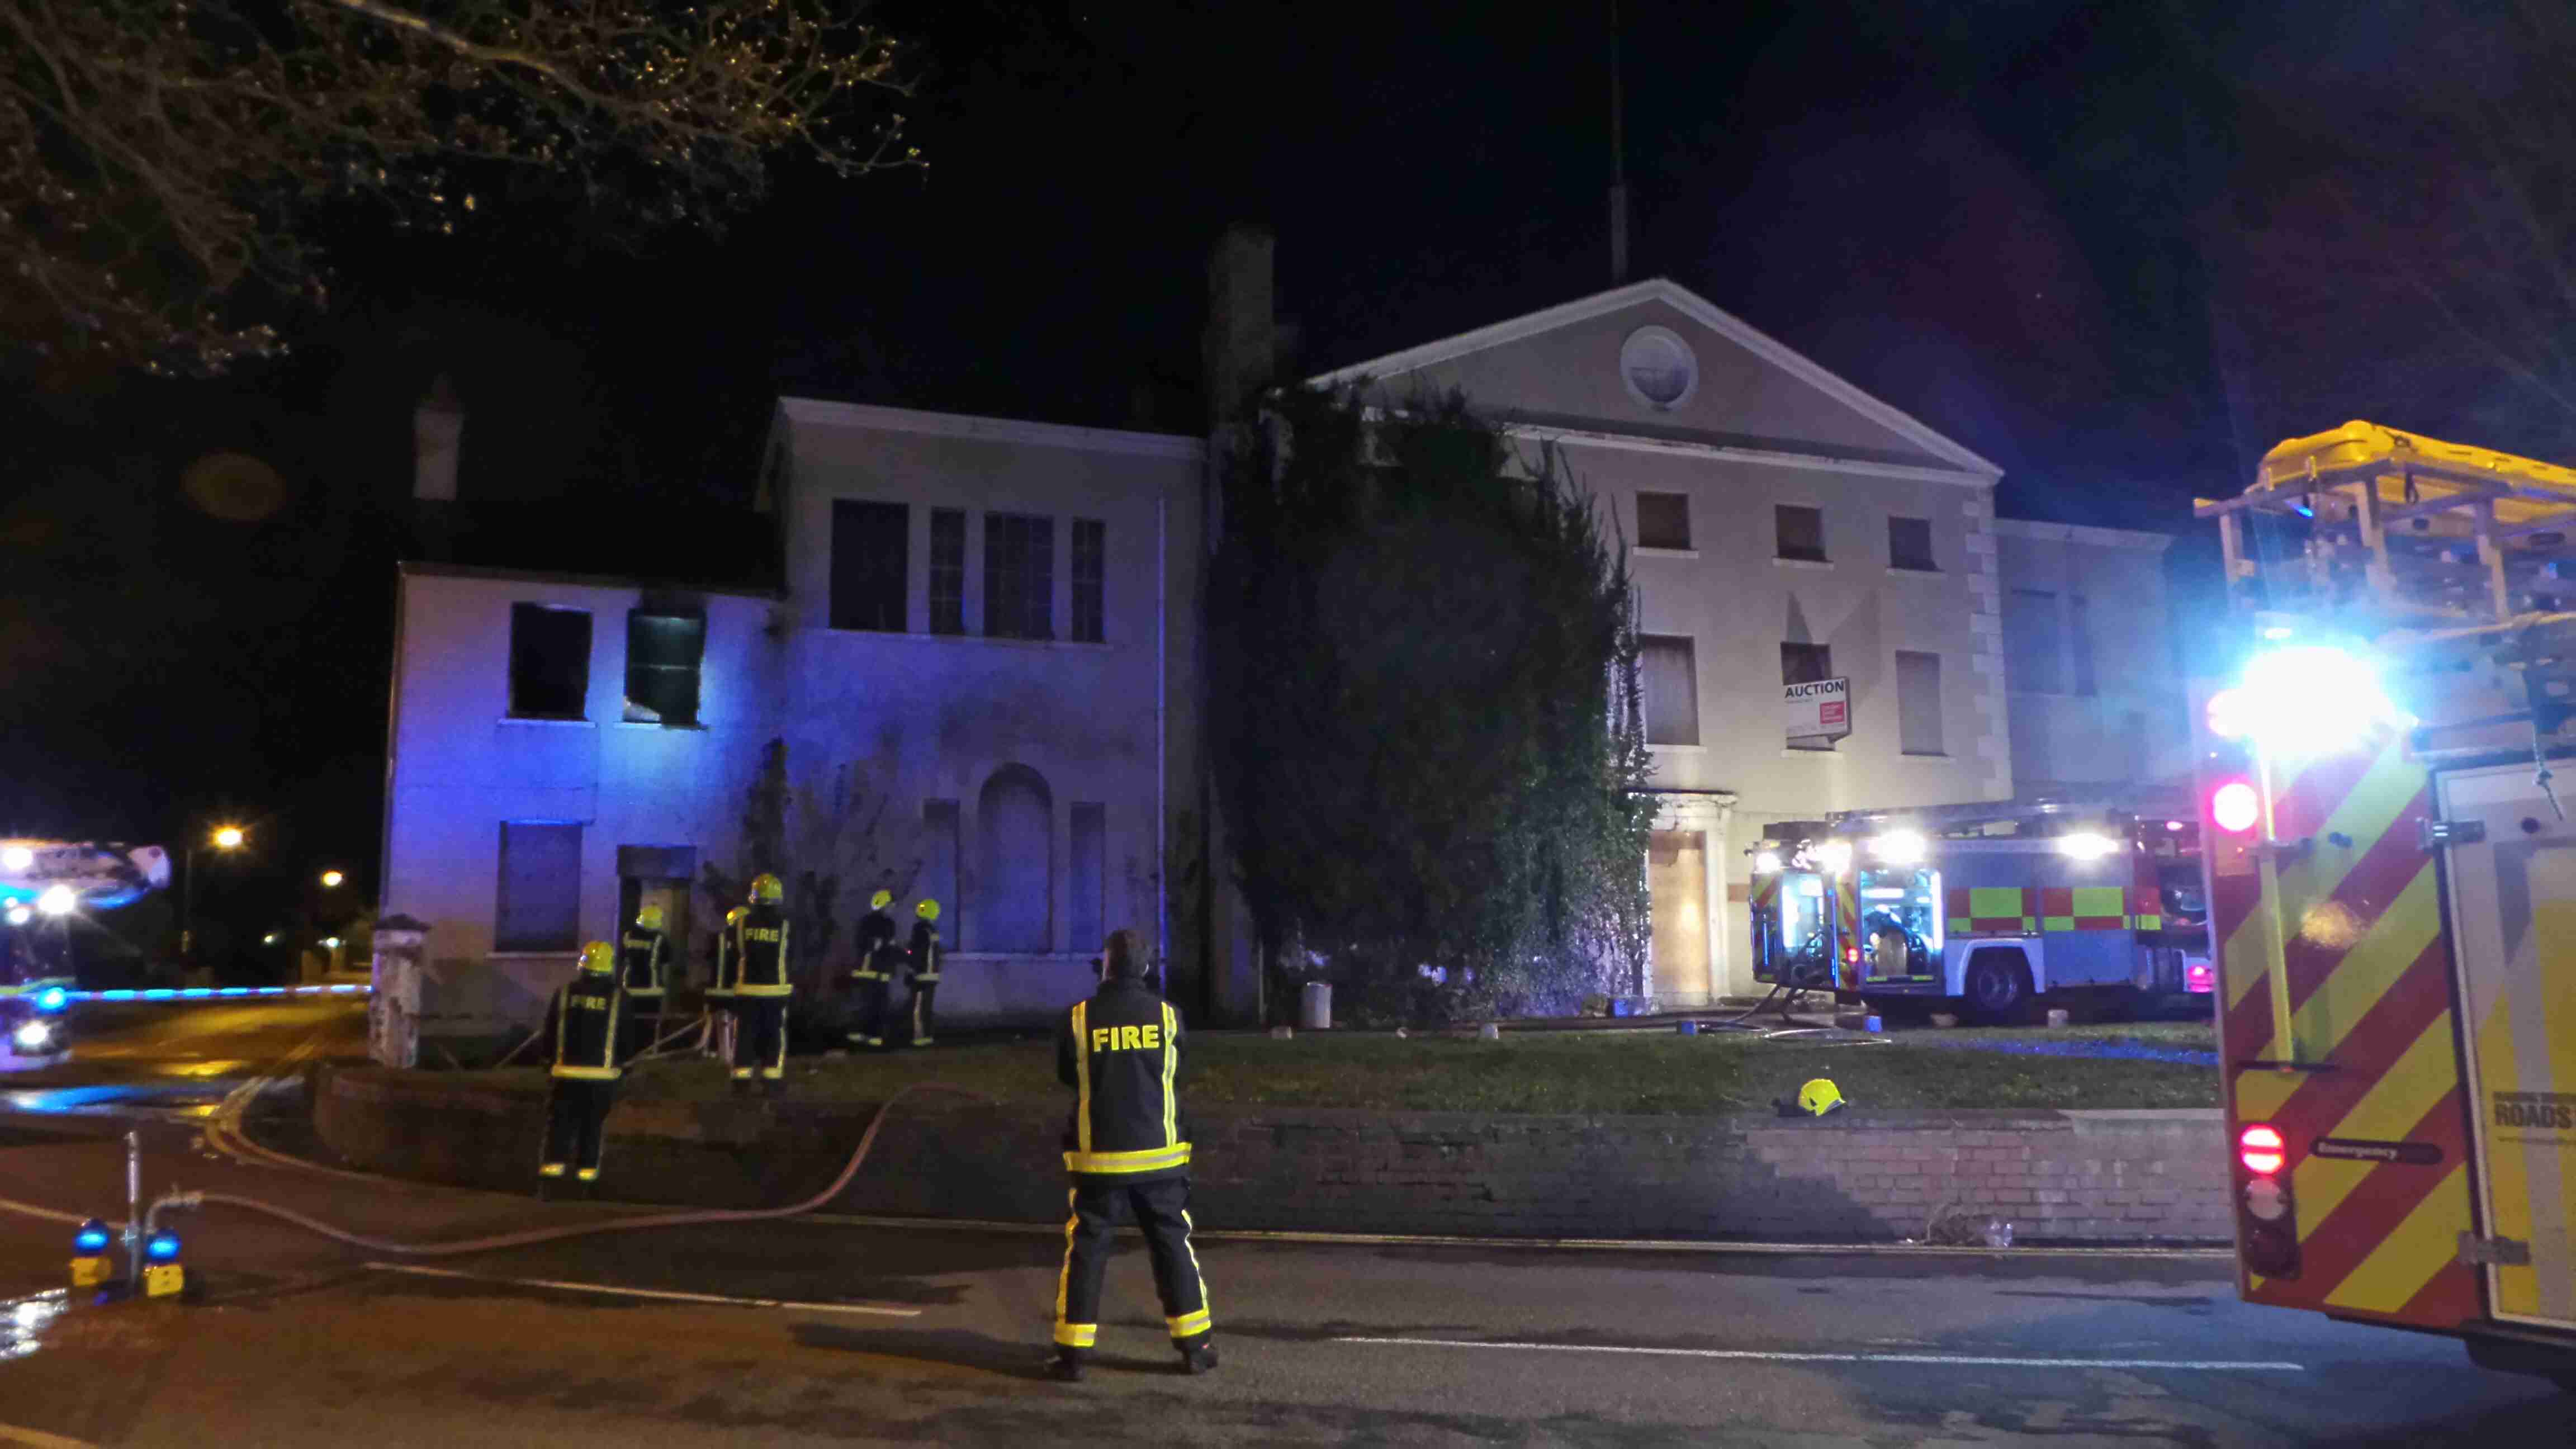 Fire at Thorne Hall